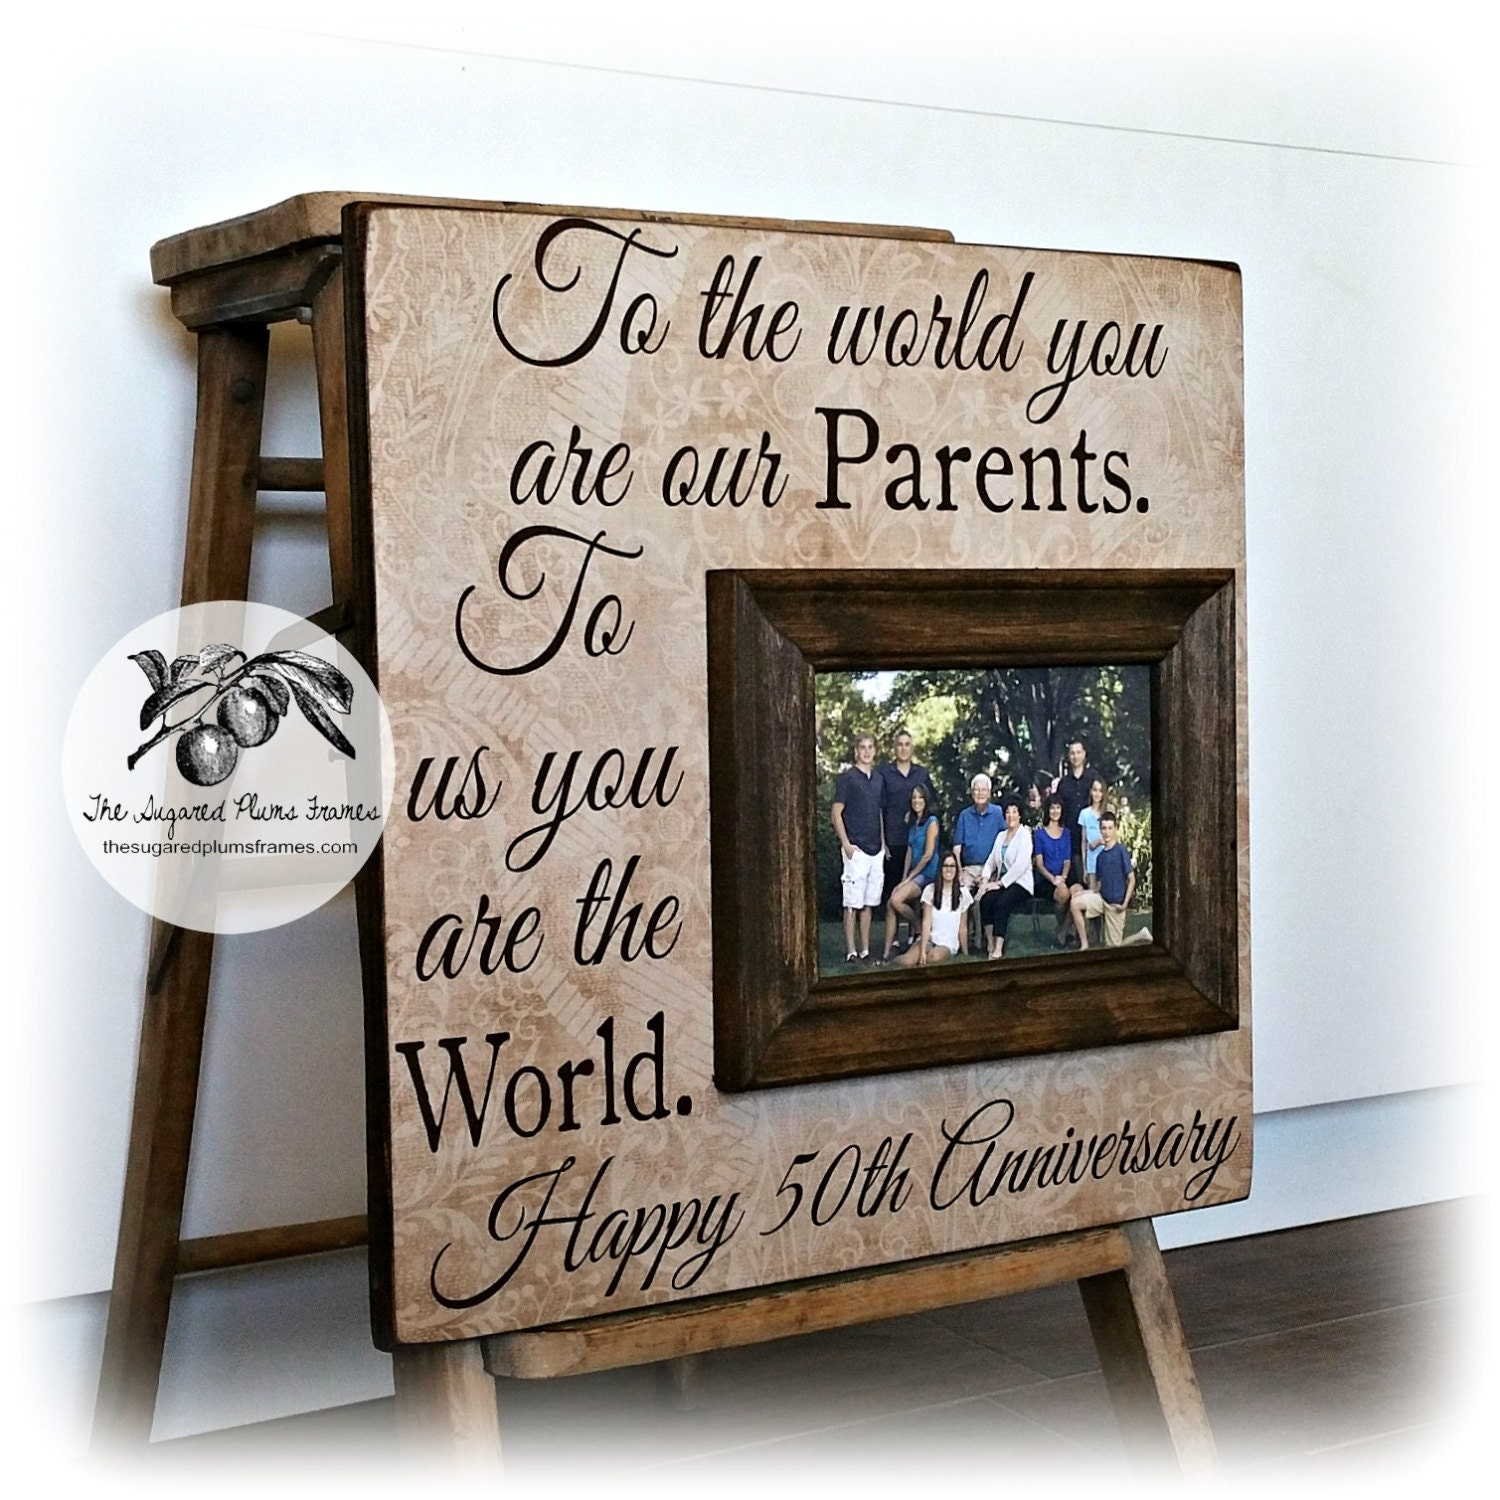 Gift Ideas For 50th Wedding Anniversary For Parents: 50th Anniversary Gifts Parents Anniversary Gift Golden